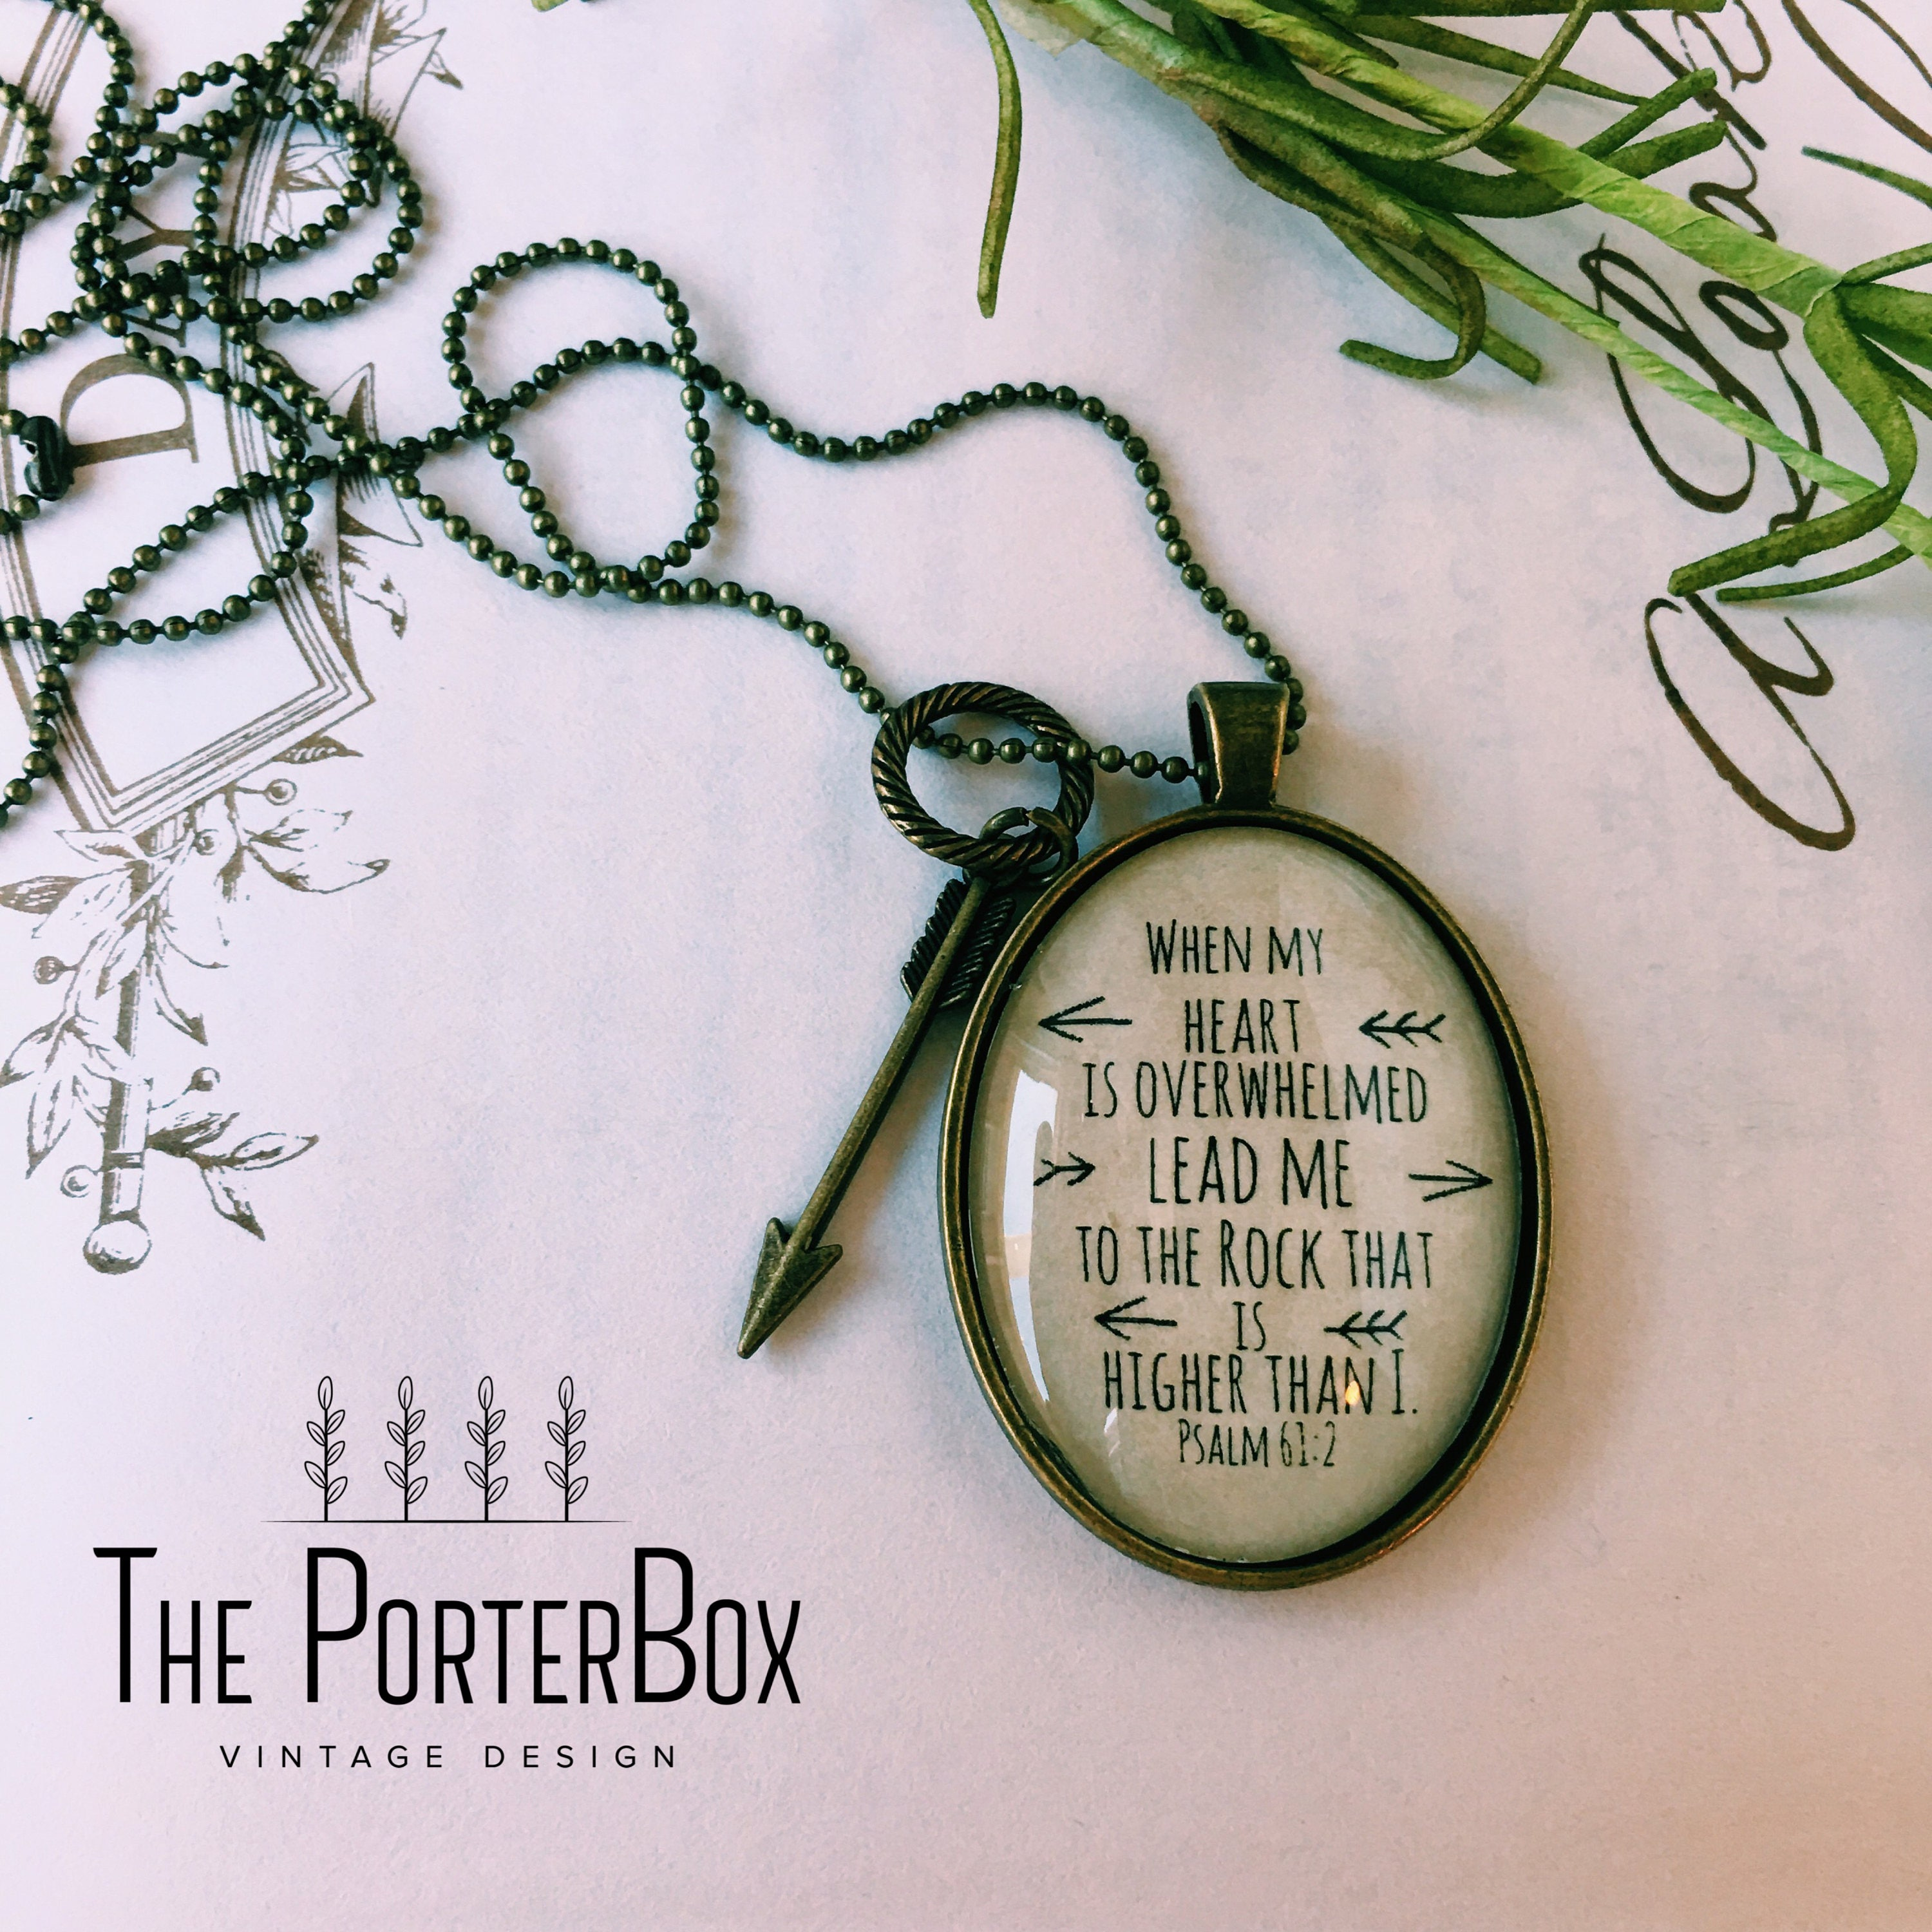 Bible verse necklace fertility necklace handwriting jewelry bible verse necklace fertility necklace handwriting jewelry miscarriage jewelry verse on jewelry aloadofball Images